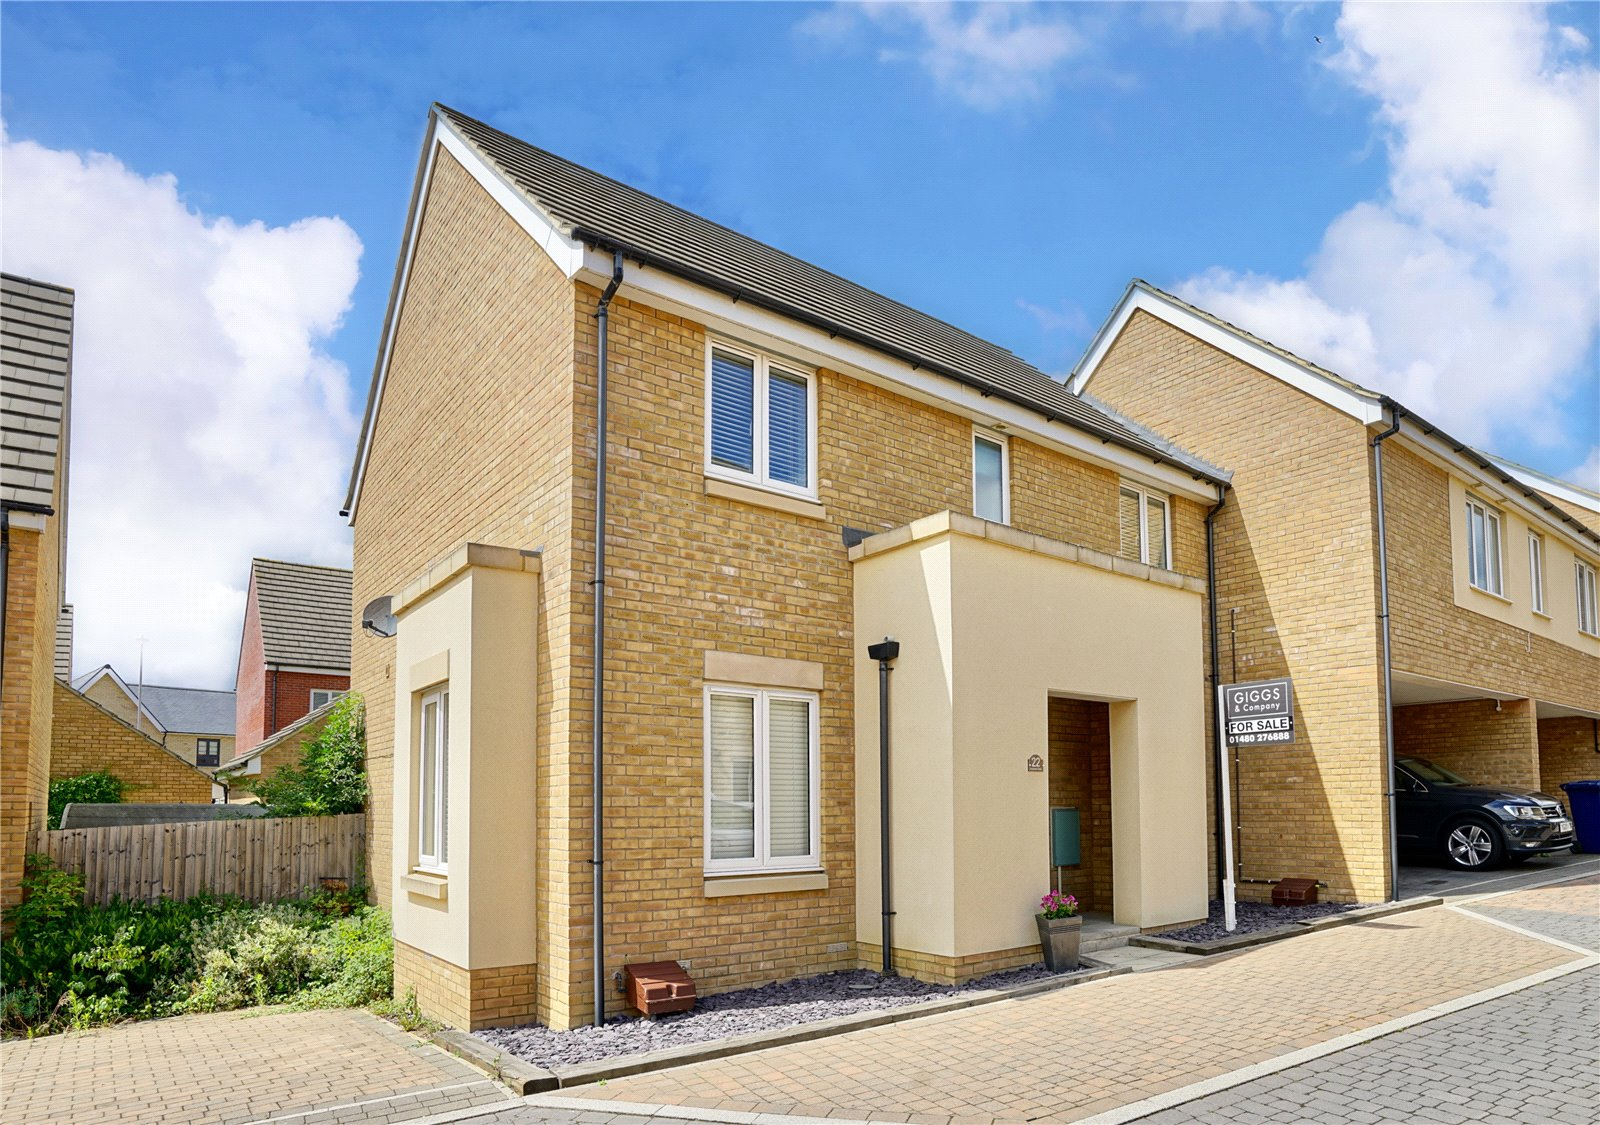 4 bed house for sale in St. Neots, Anderson Close, PE19 6DN  - Property Image 1